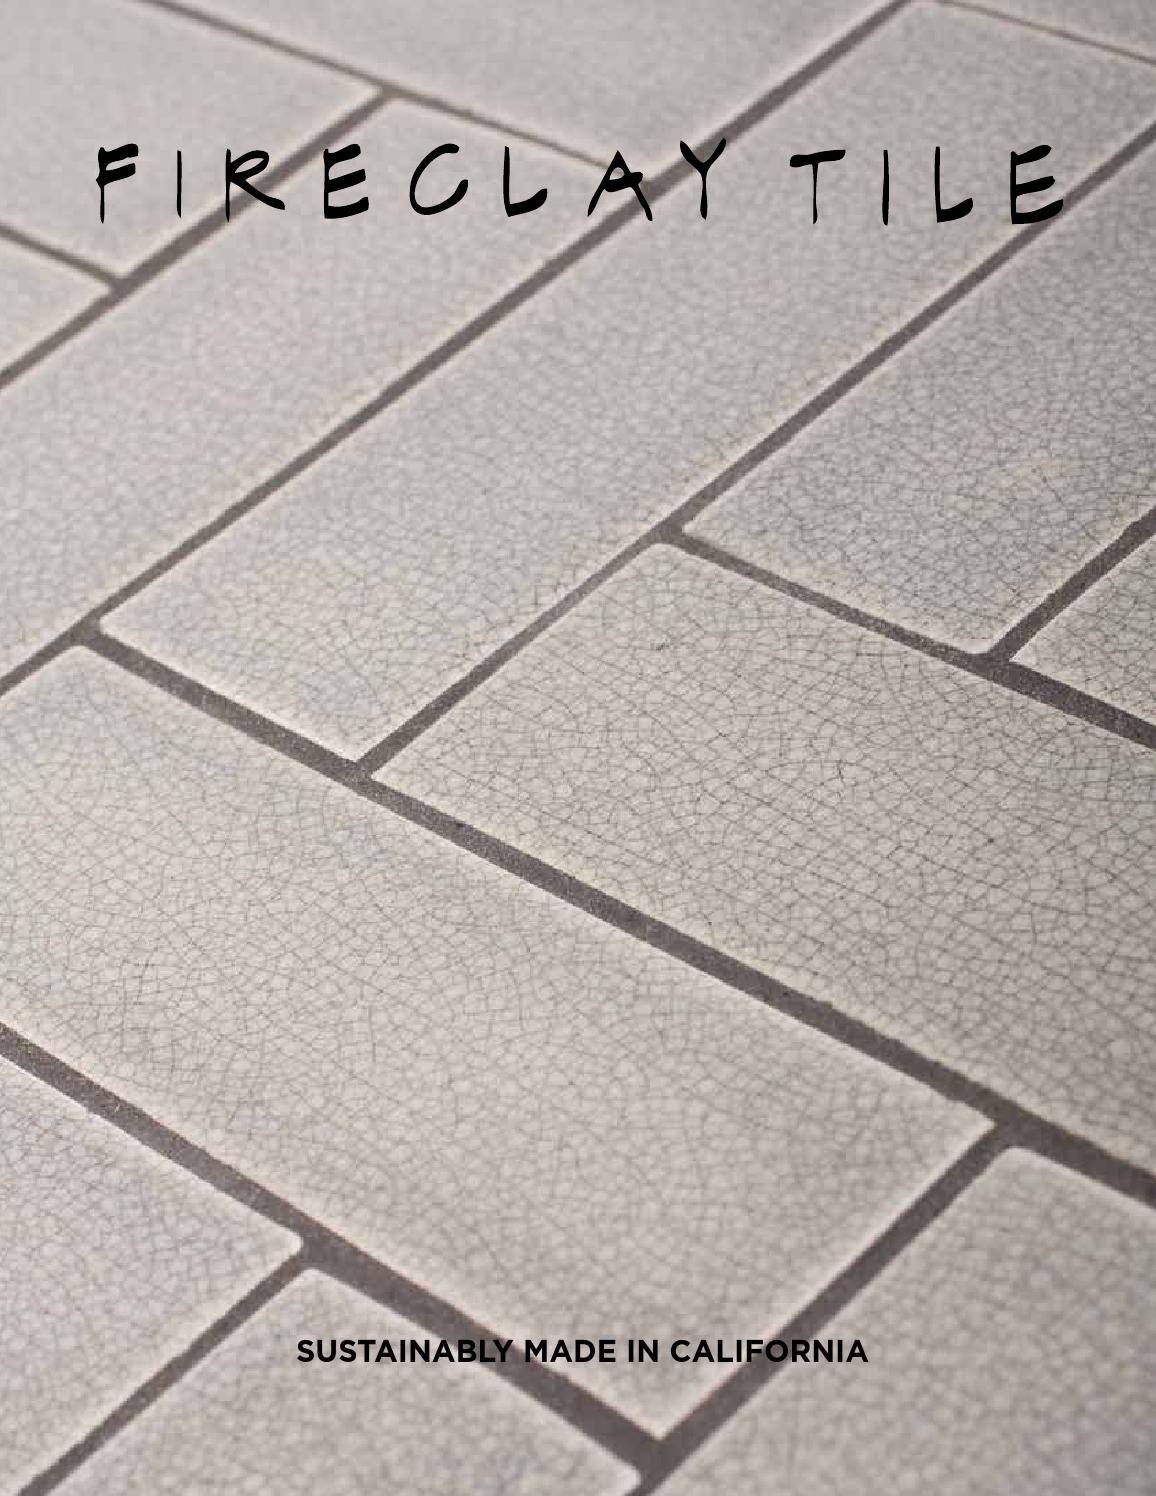 Fireclay Tile 2013 Print Catalog by Fireclay Tile - issuu